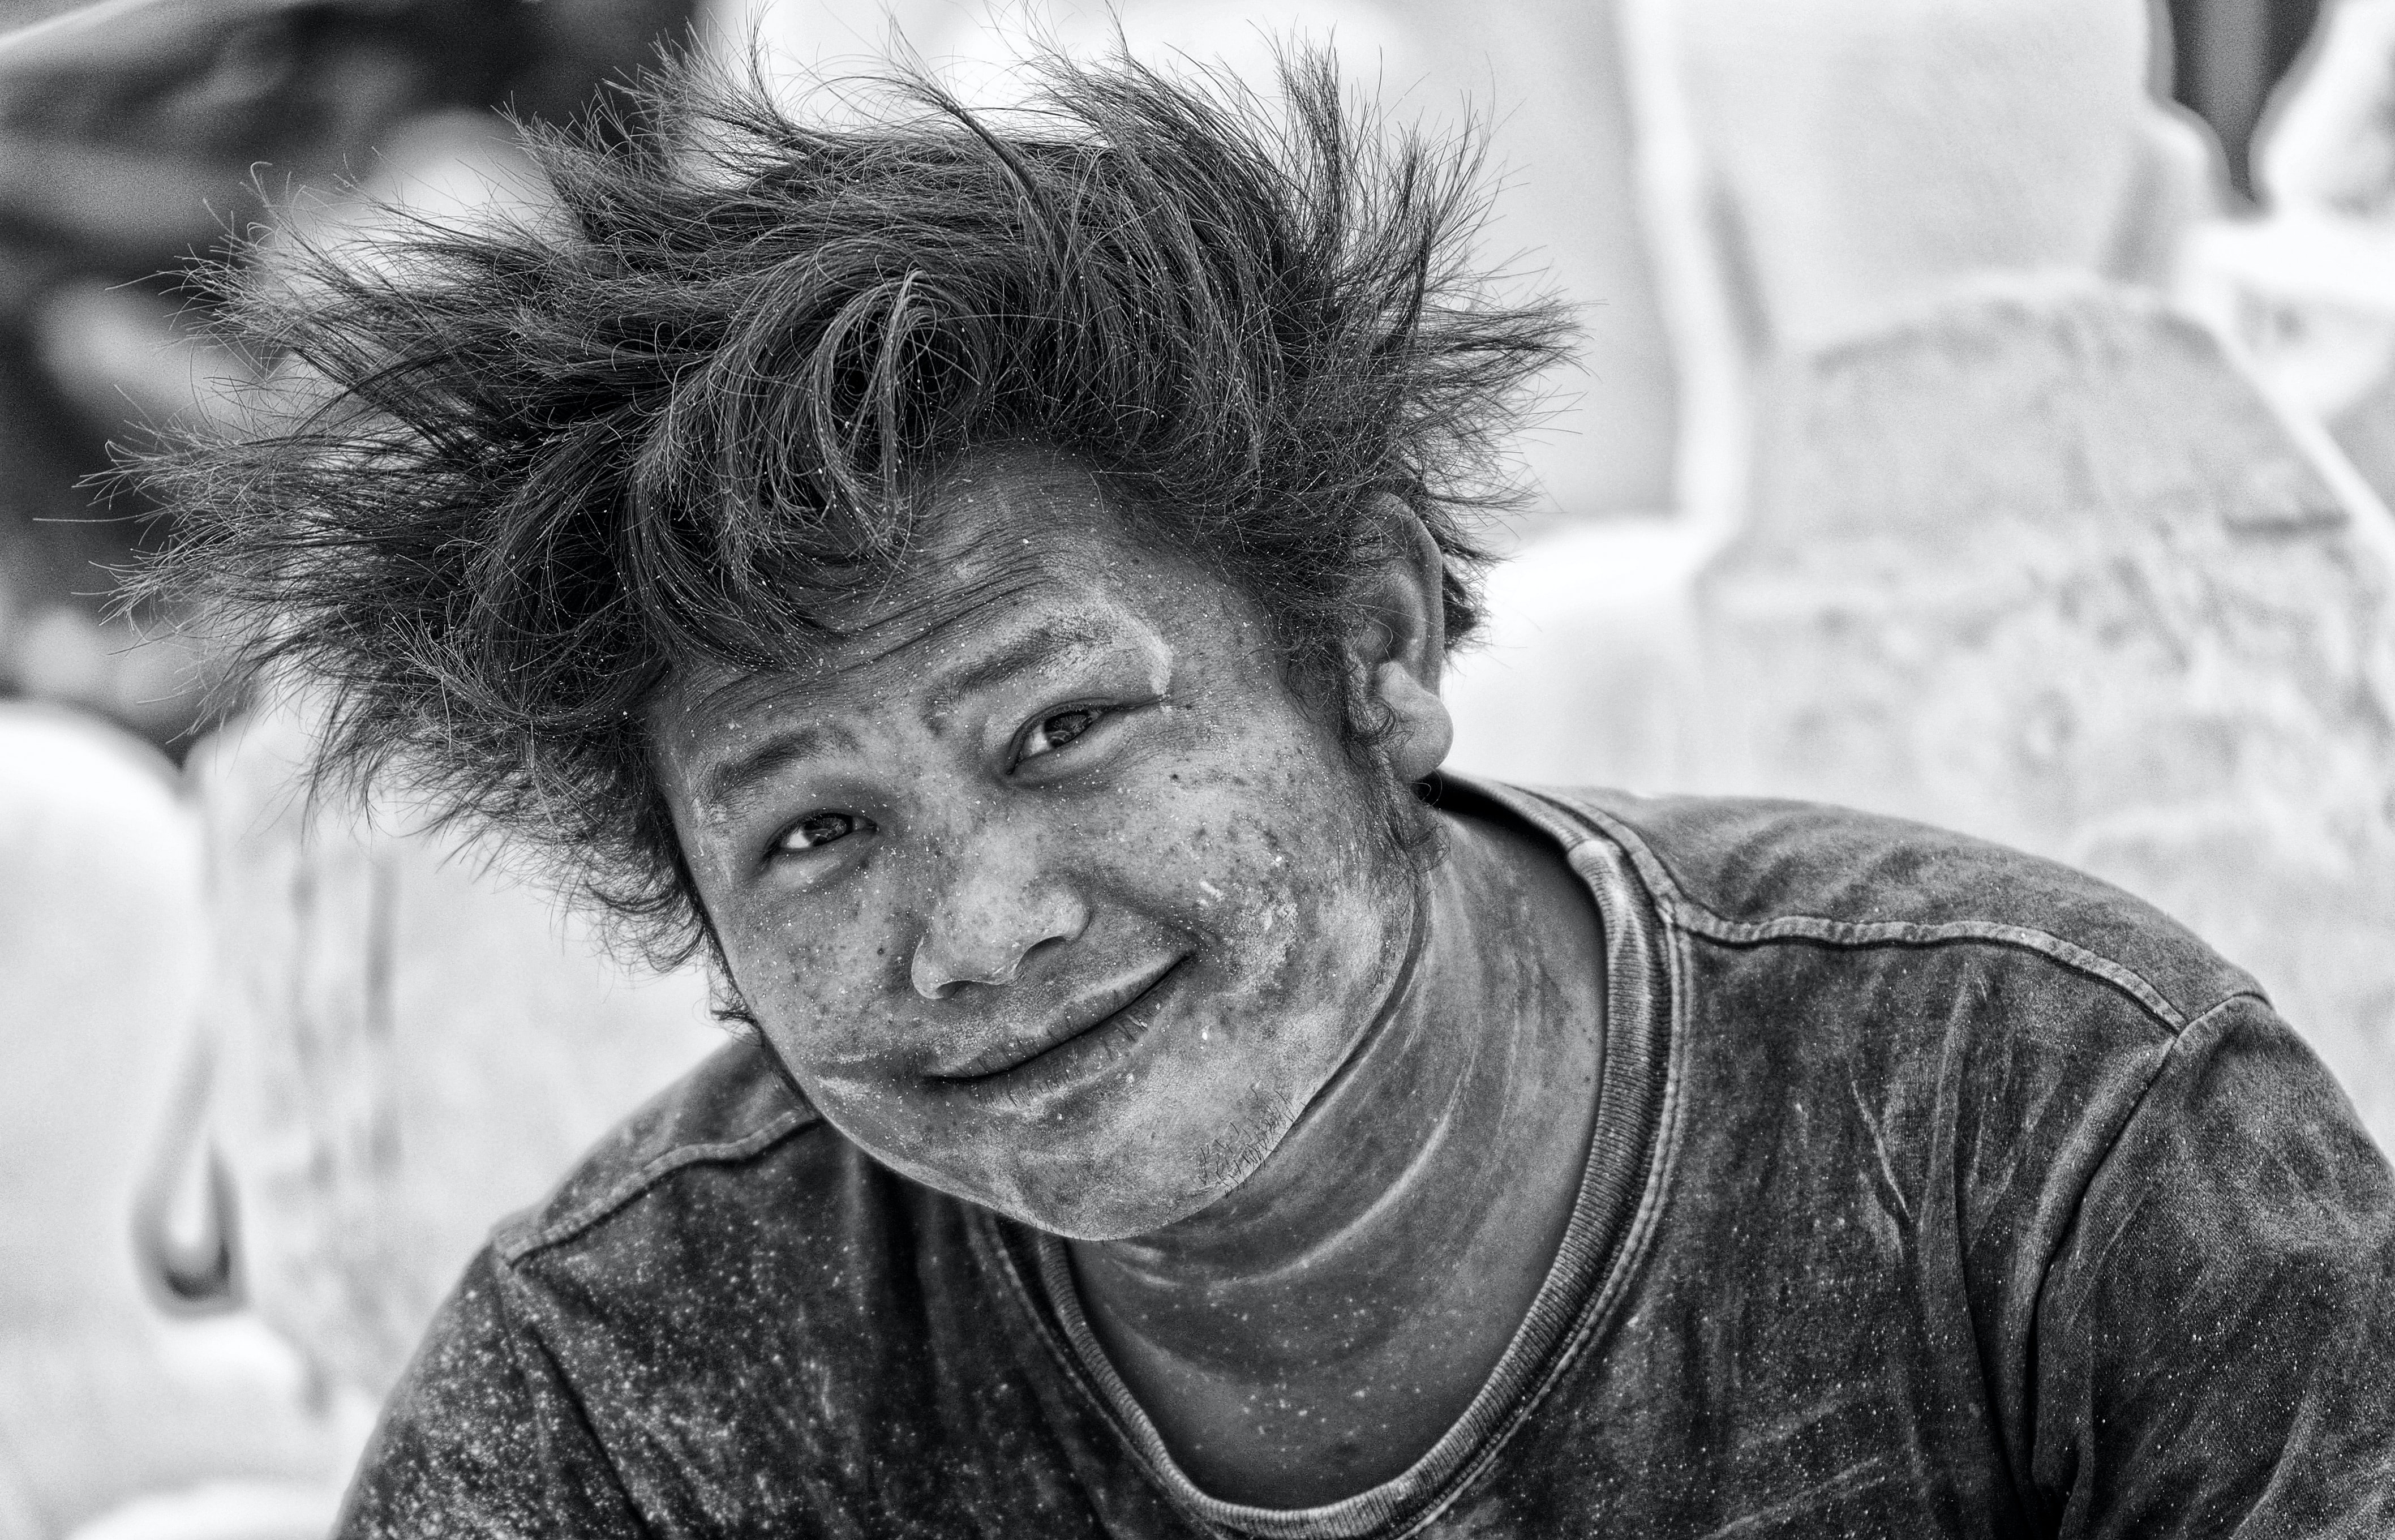 Picture of a dusty builder